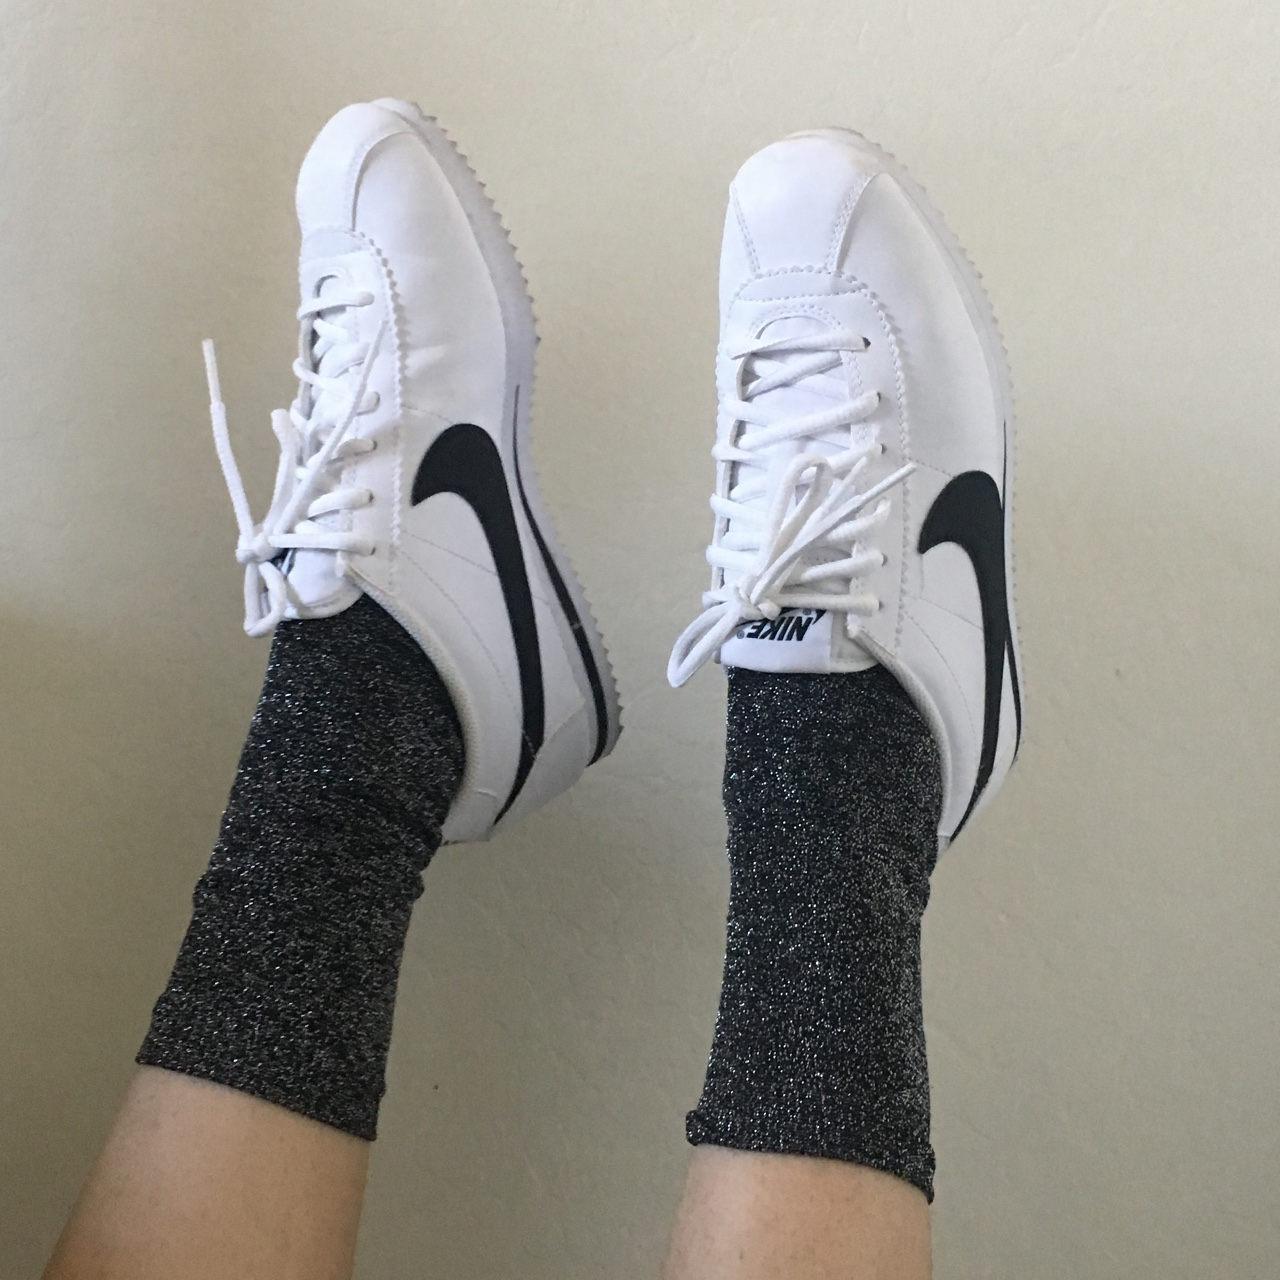 quality design 87957 a613c White and black NIKE Cortez. Like new, they just fit... - Depop